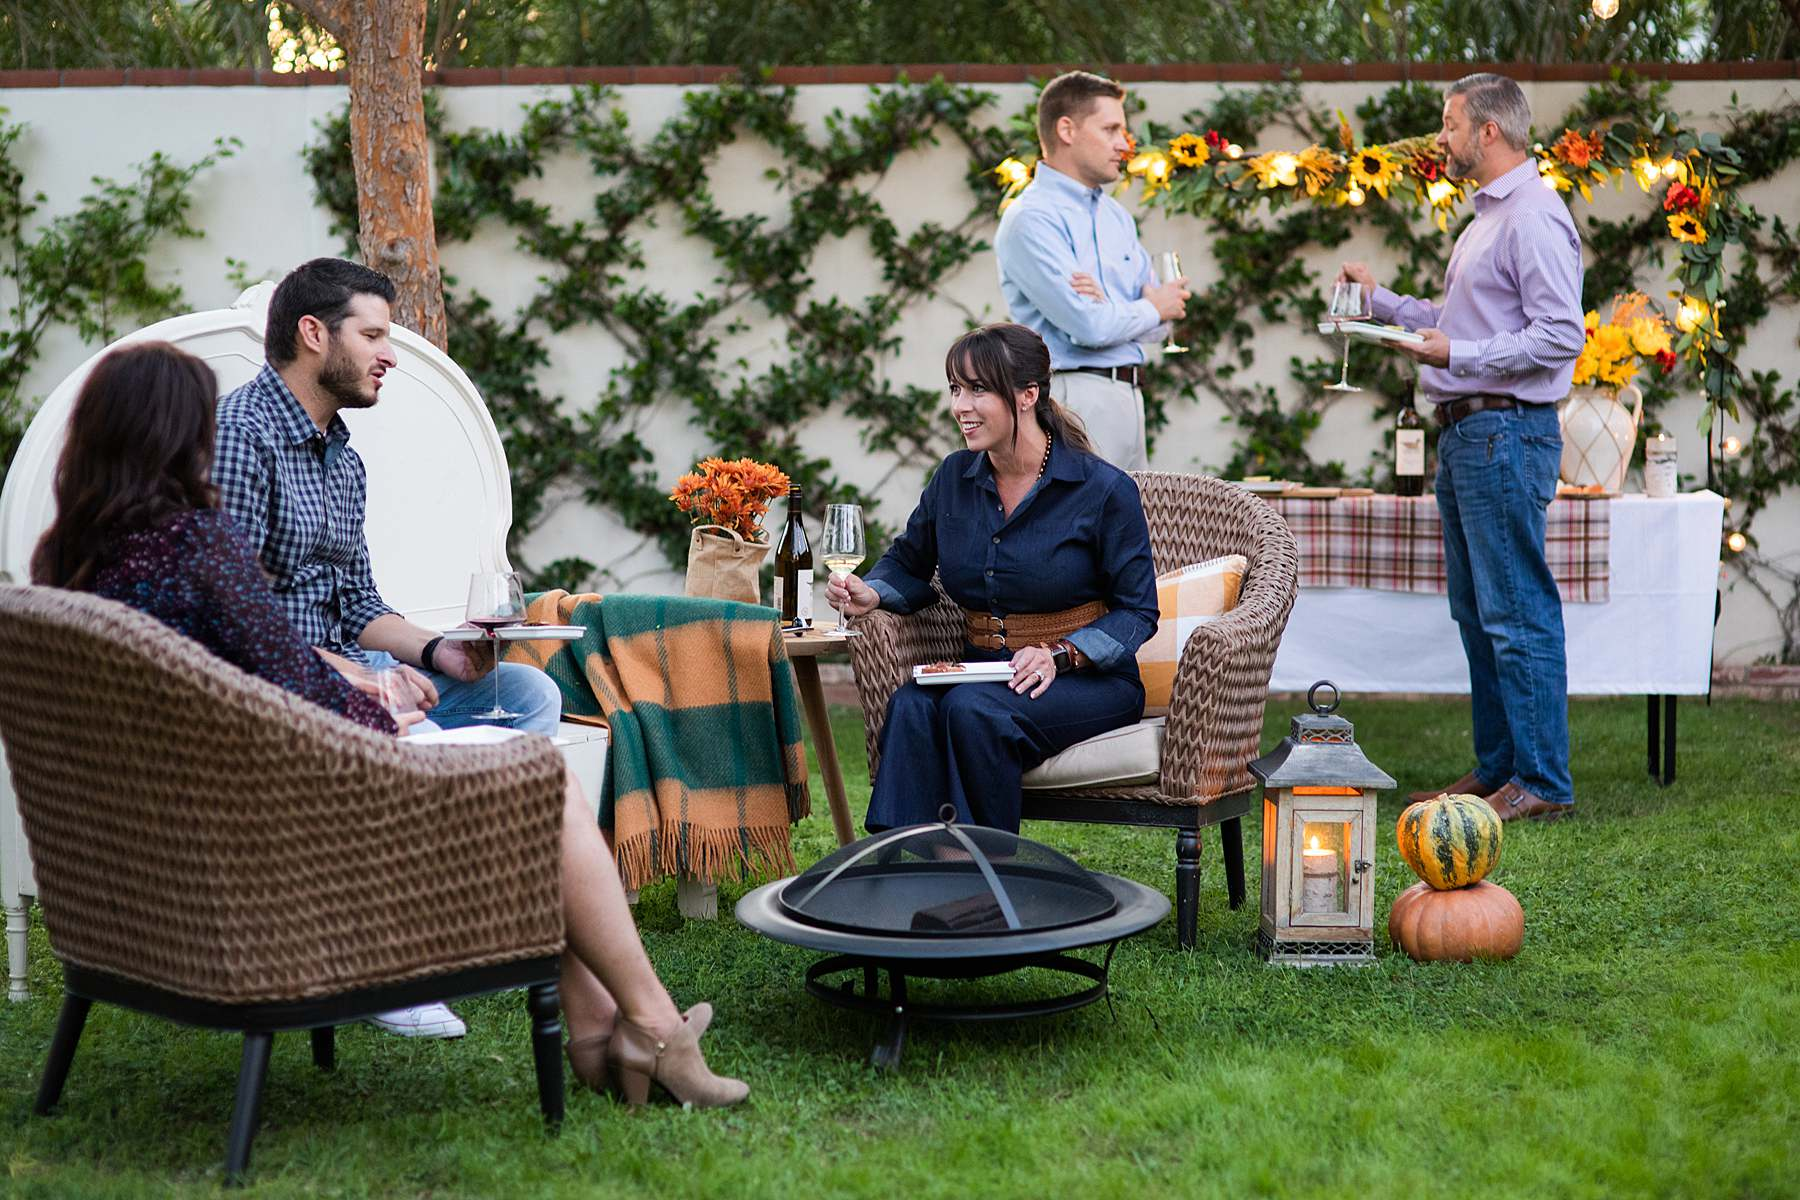 outdoor party gathering for thanksgiving fall evening backyard party decoy wine night party Friendsgiving outdoor party catch up - Diana Elizabeth blog phoenix lifestyle entertaining hostess blogger